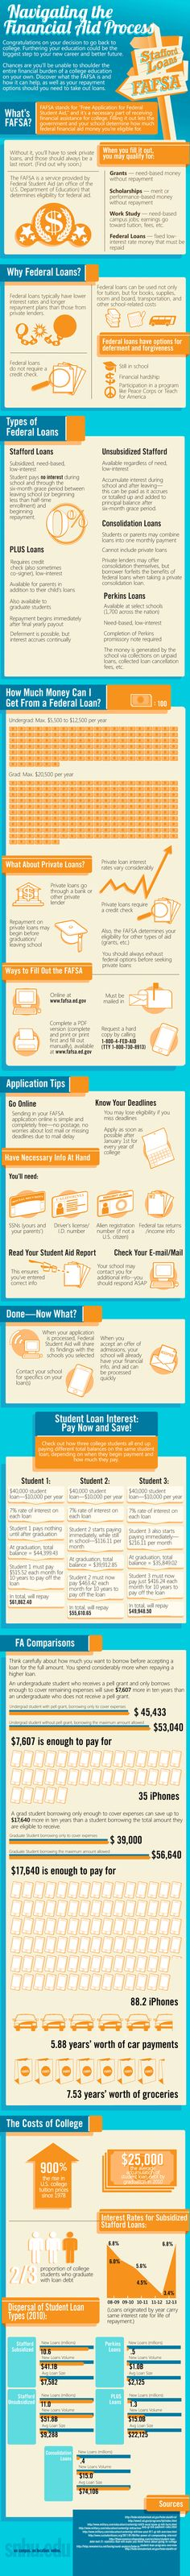 Knowing where to turn for financial aid when applying to college can be very overwhelming. Here's an infographic on how the college financial aid process works.